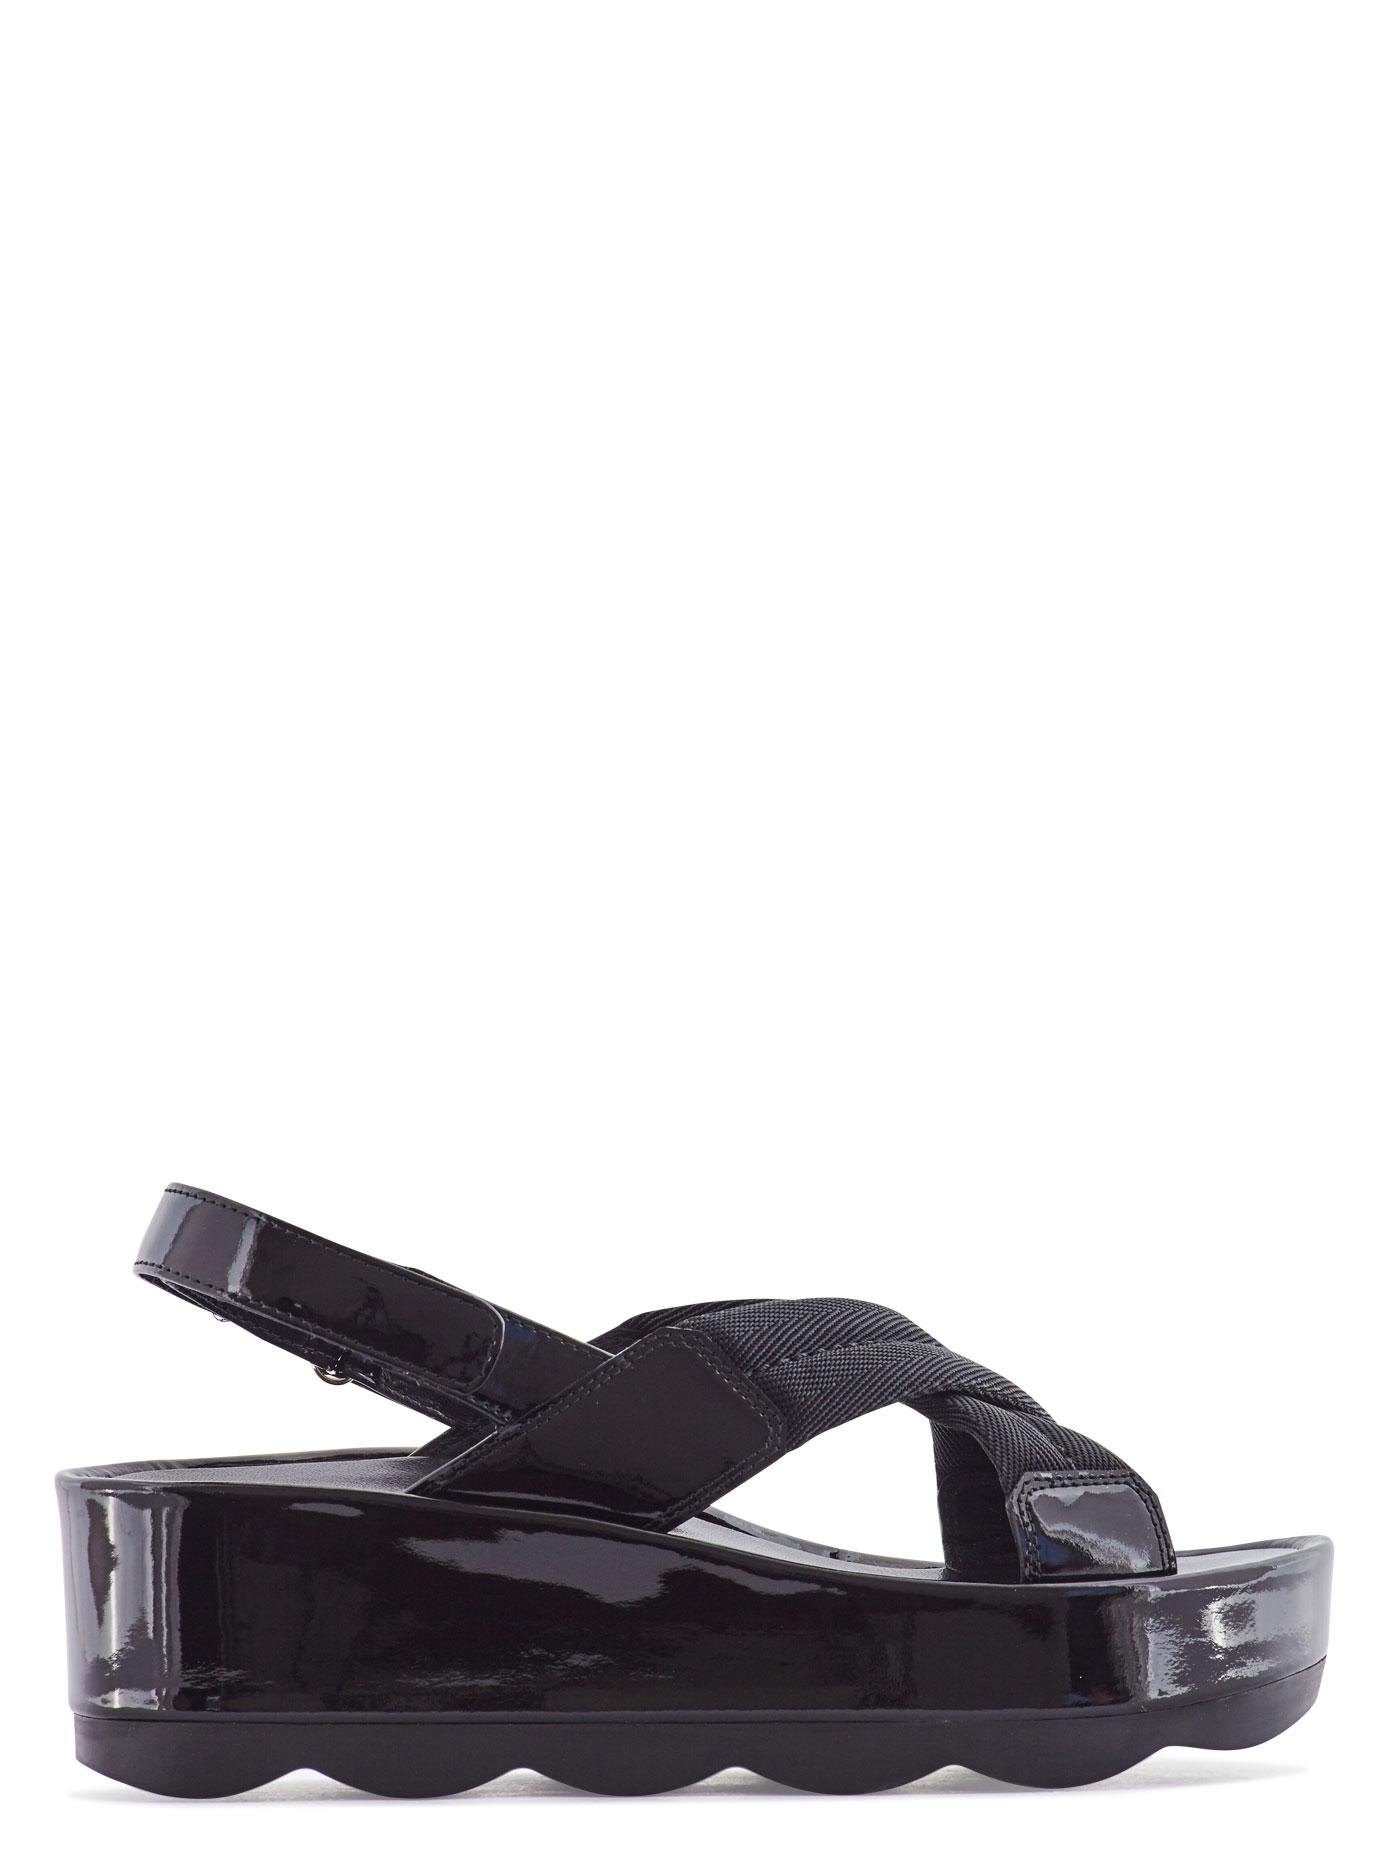 Lyst Prada Nylon And Patent Leather Crossover Sandals In